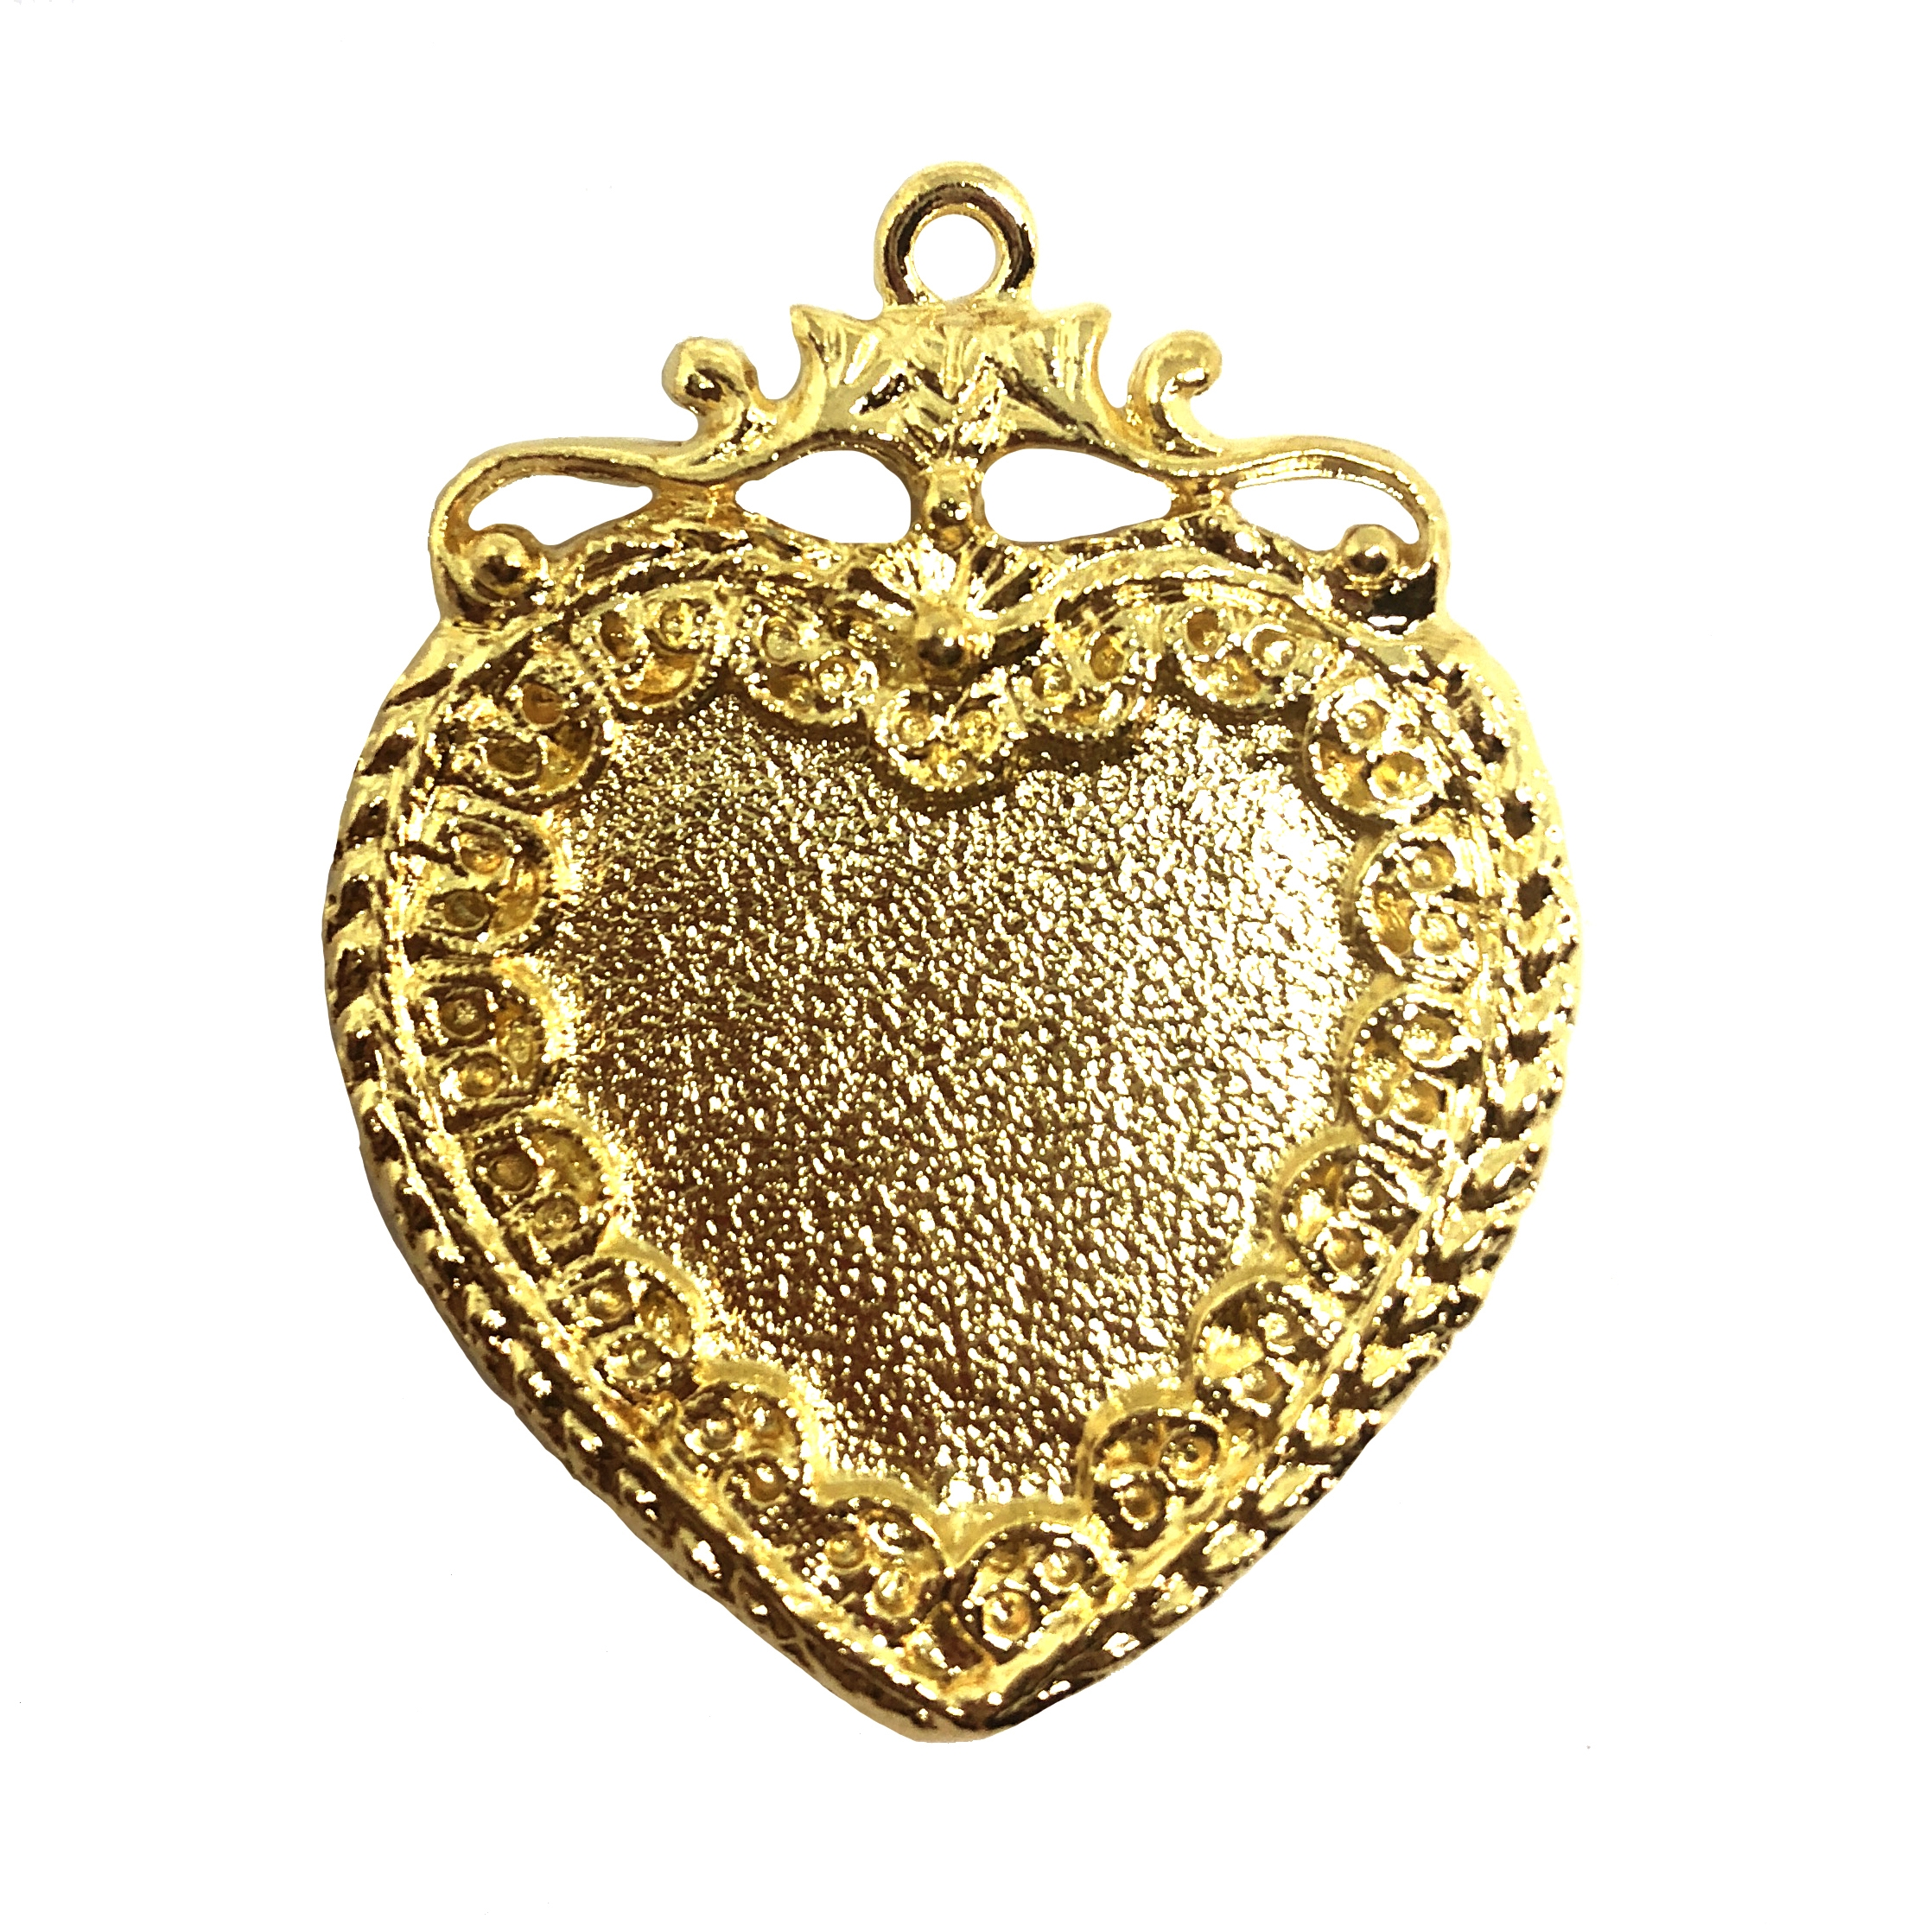 Vintage Style Heart Pendant 22k Gold Finish Pewter B Sue By 1928